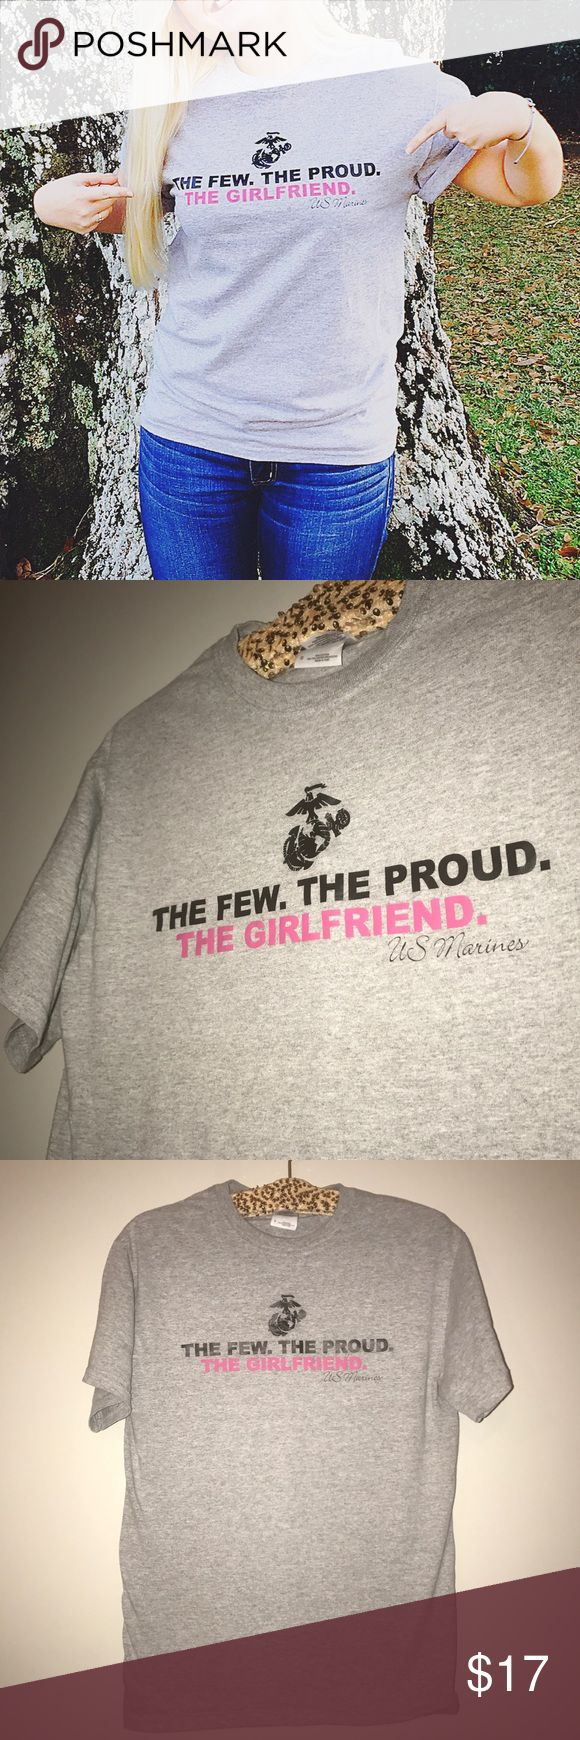 The Few. The Proud. The Girlfriend. USMC Tee This shirt I had specially made for me!! You will not find this sold anywhere unless my idea was stolen.  It's nearly in perfect condition, only worn a few times, and the only reason I am selling is because I am no longer the girlfriend but now a wife.  I would just love for another girlfriend somewhere with USMC pride for their Marine to have this and love it just like I did. USMC Tops Tees - Short Sleeve